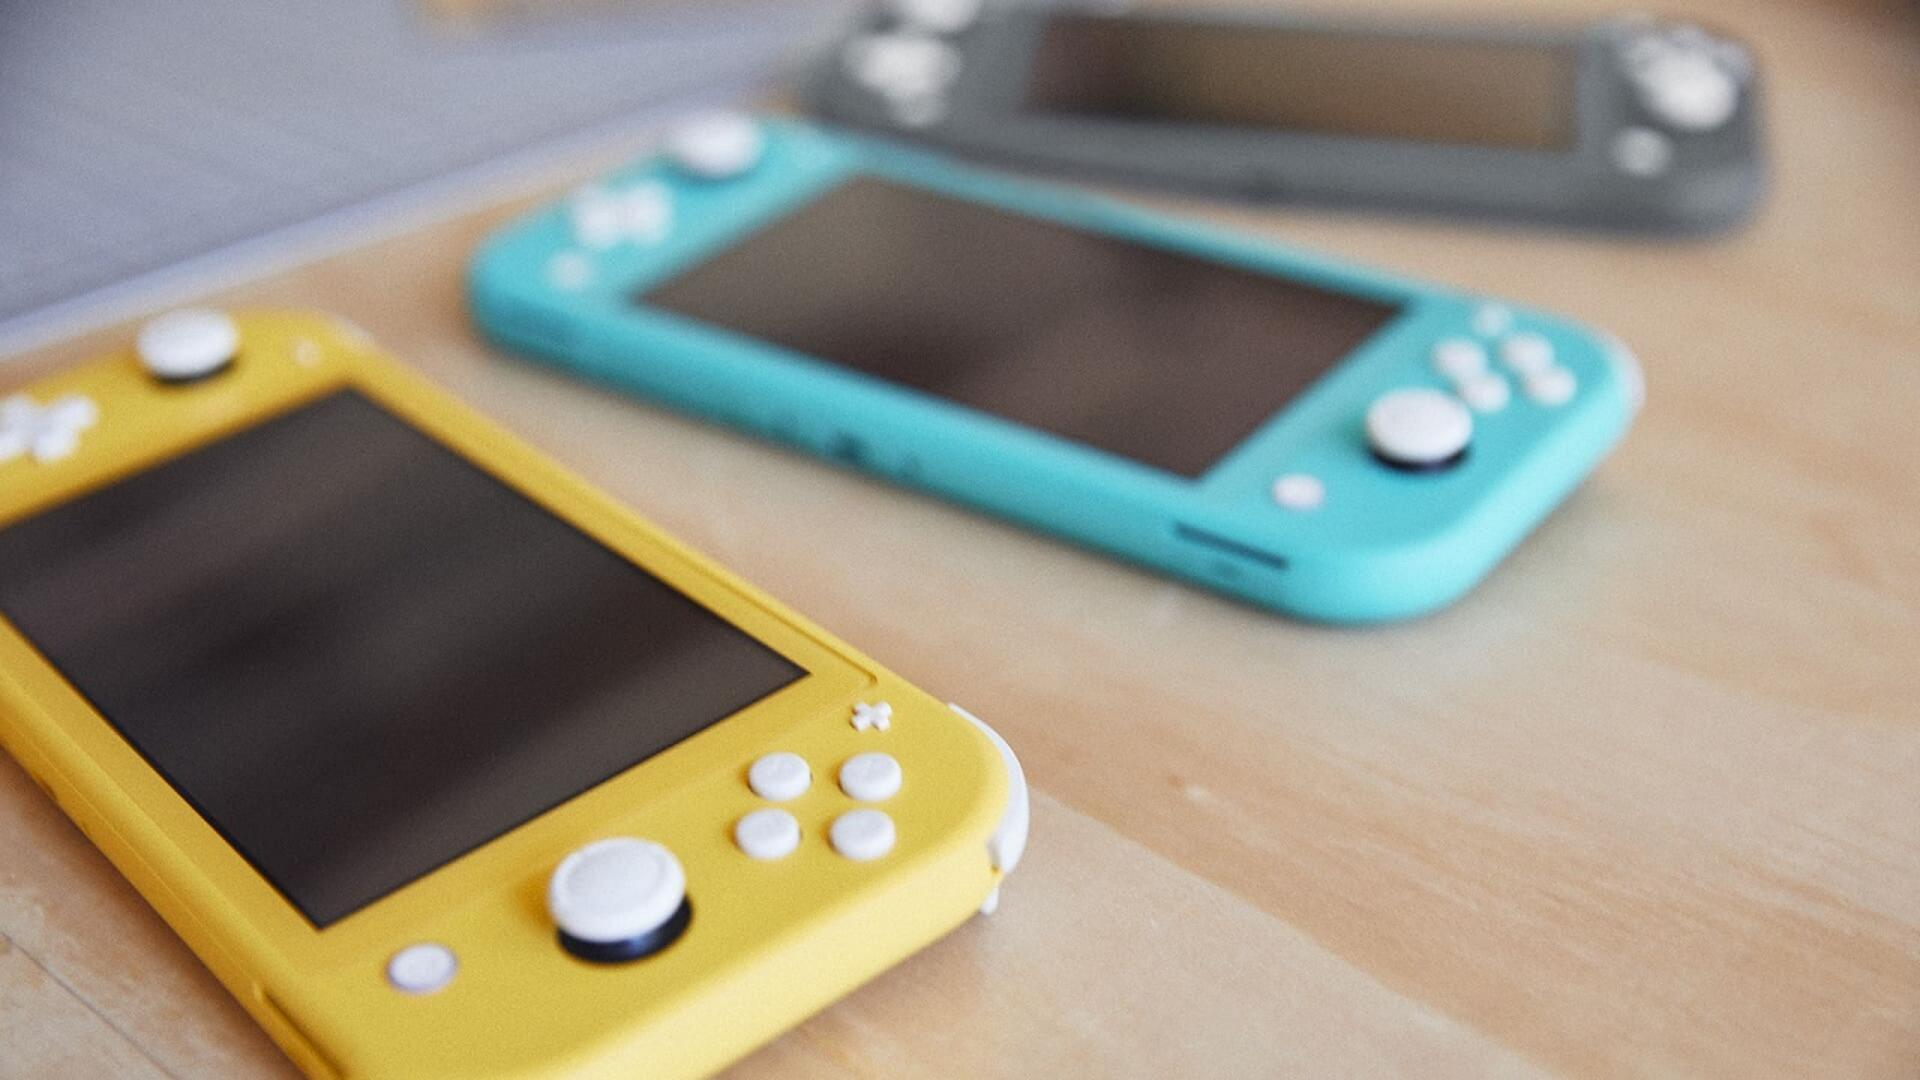 Nintendo Instructs Customer Service to Fix Notorious Joy-Con Drift for Free, According to Report